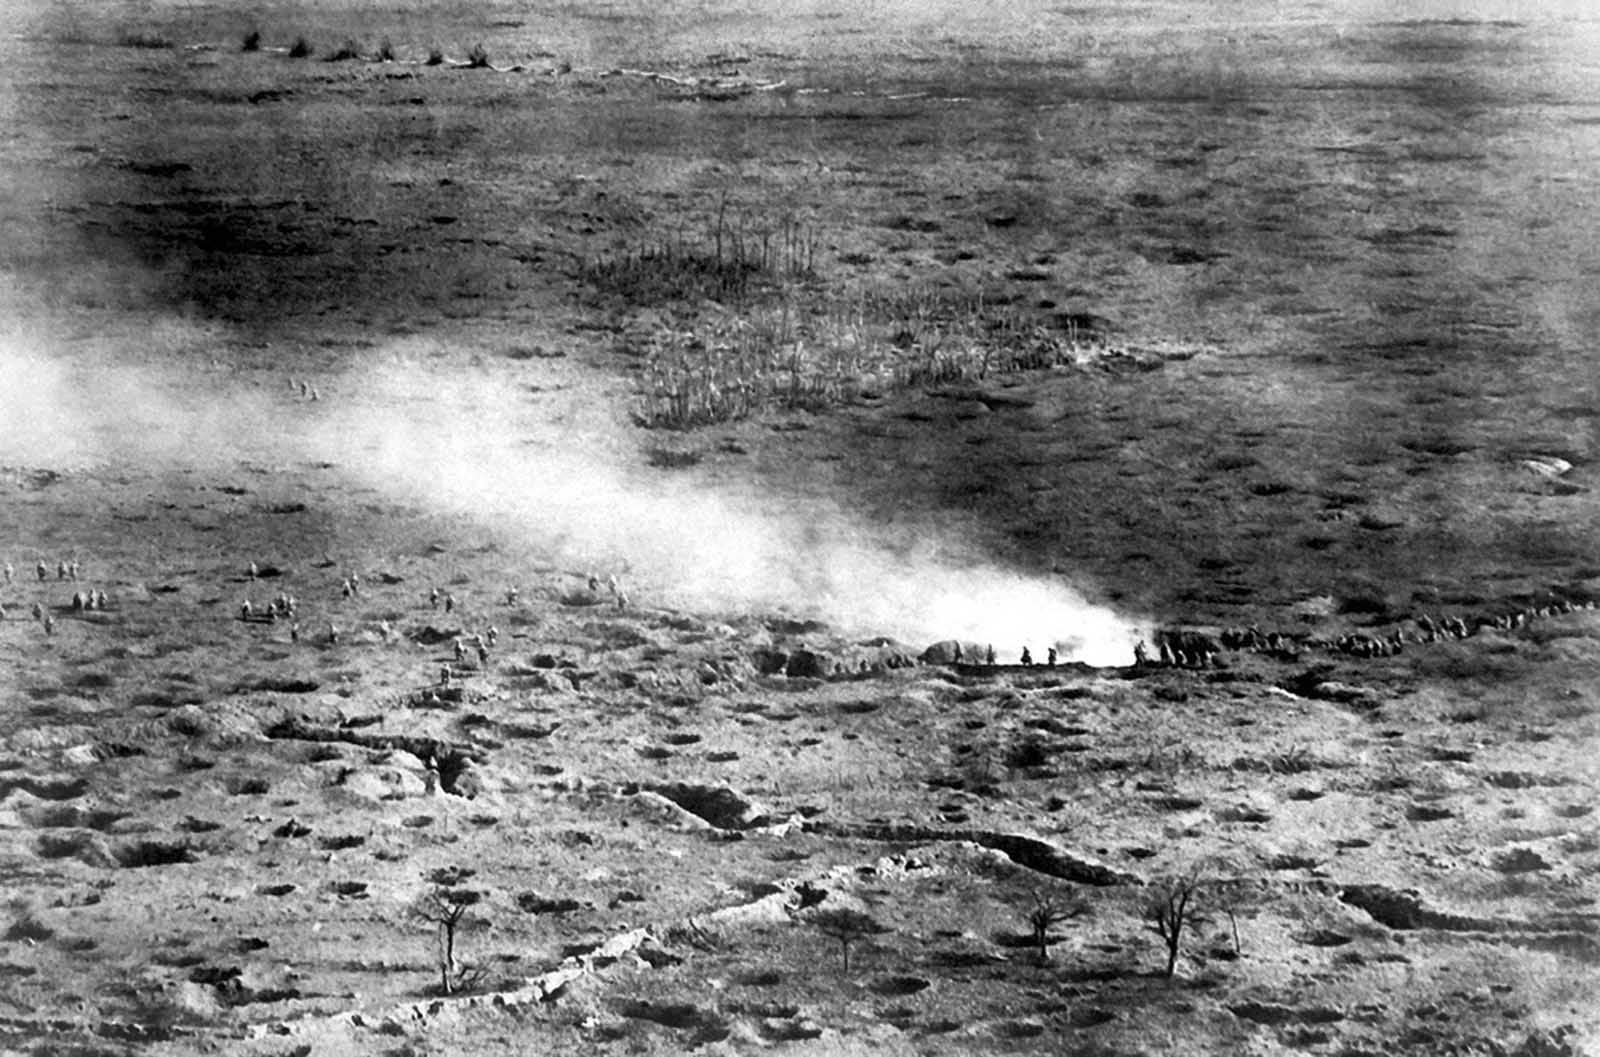 At a height of 150 meters above the fighting line, a French photographer was able to capture a photograph of French troops on the Somme Front, launching an attack on the Germans, ca. 1916. The smoke may have been deployed intentionally, as a screening device to mask the advance.